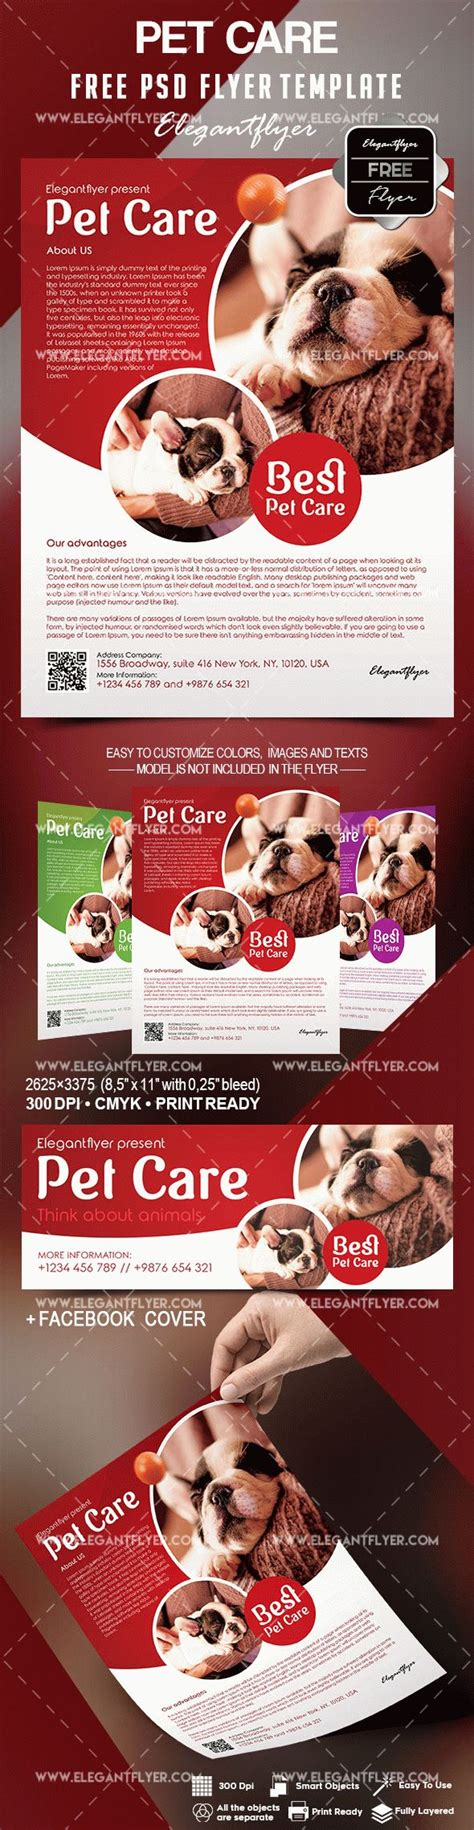 free pet care flyer template by elegantflyer